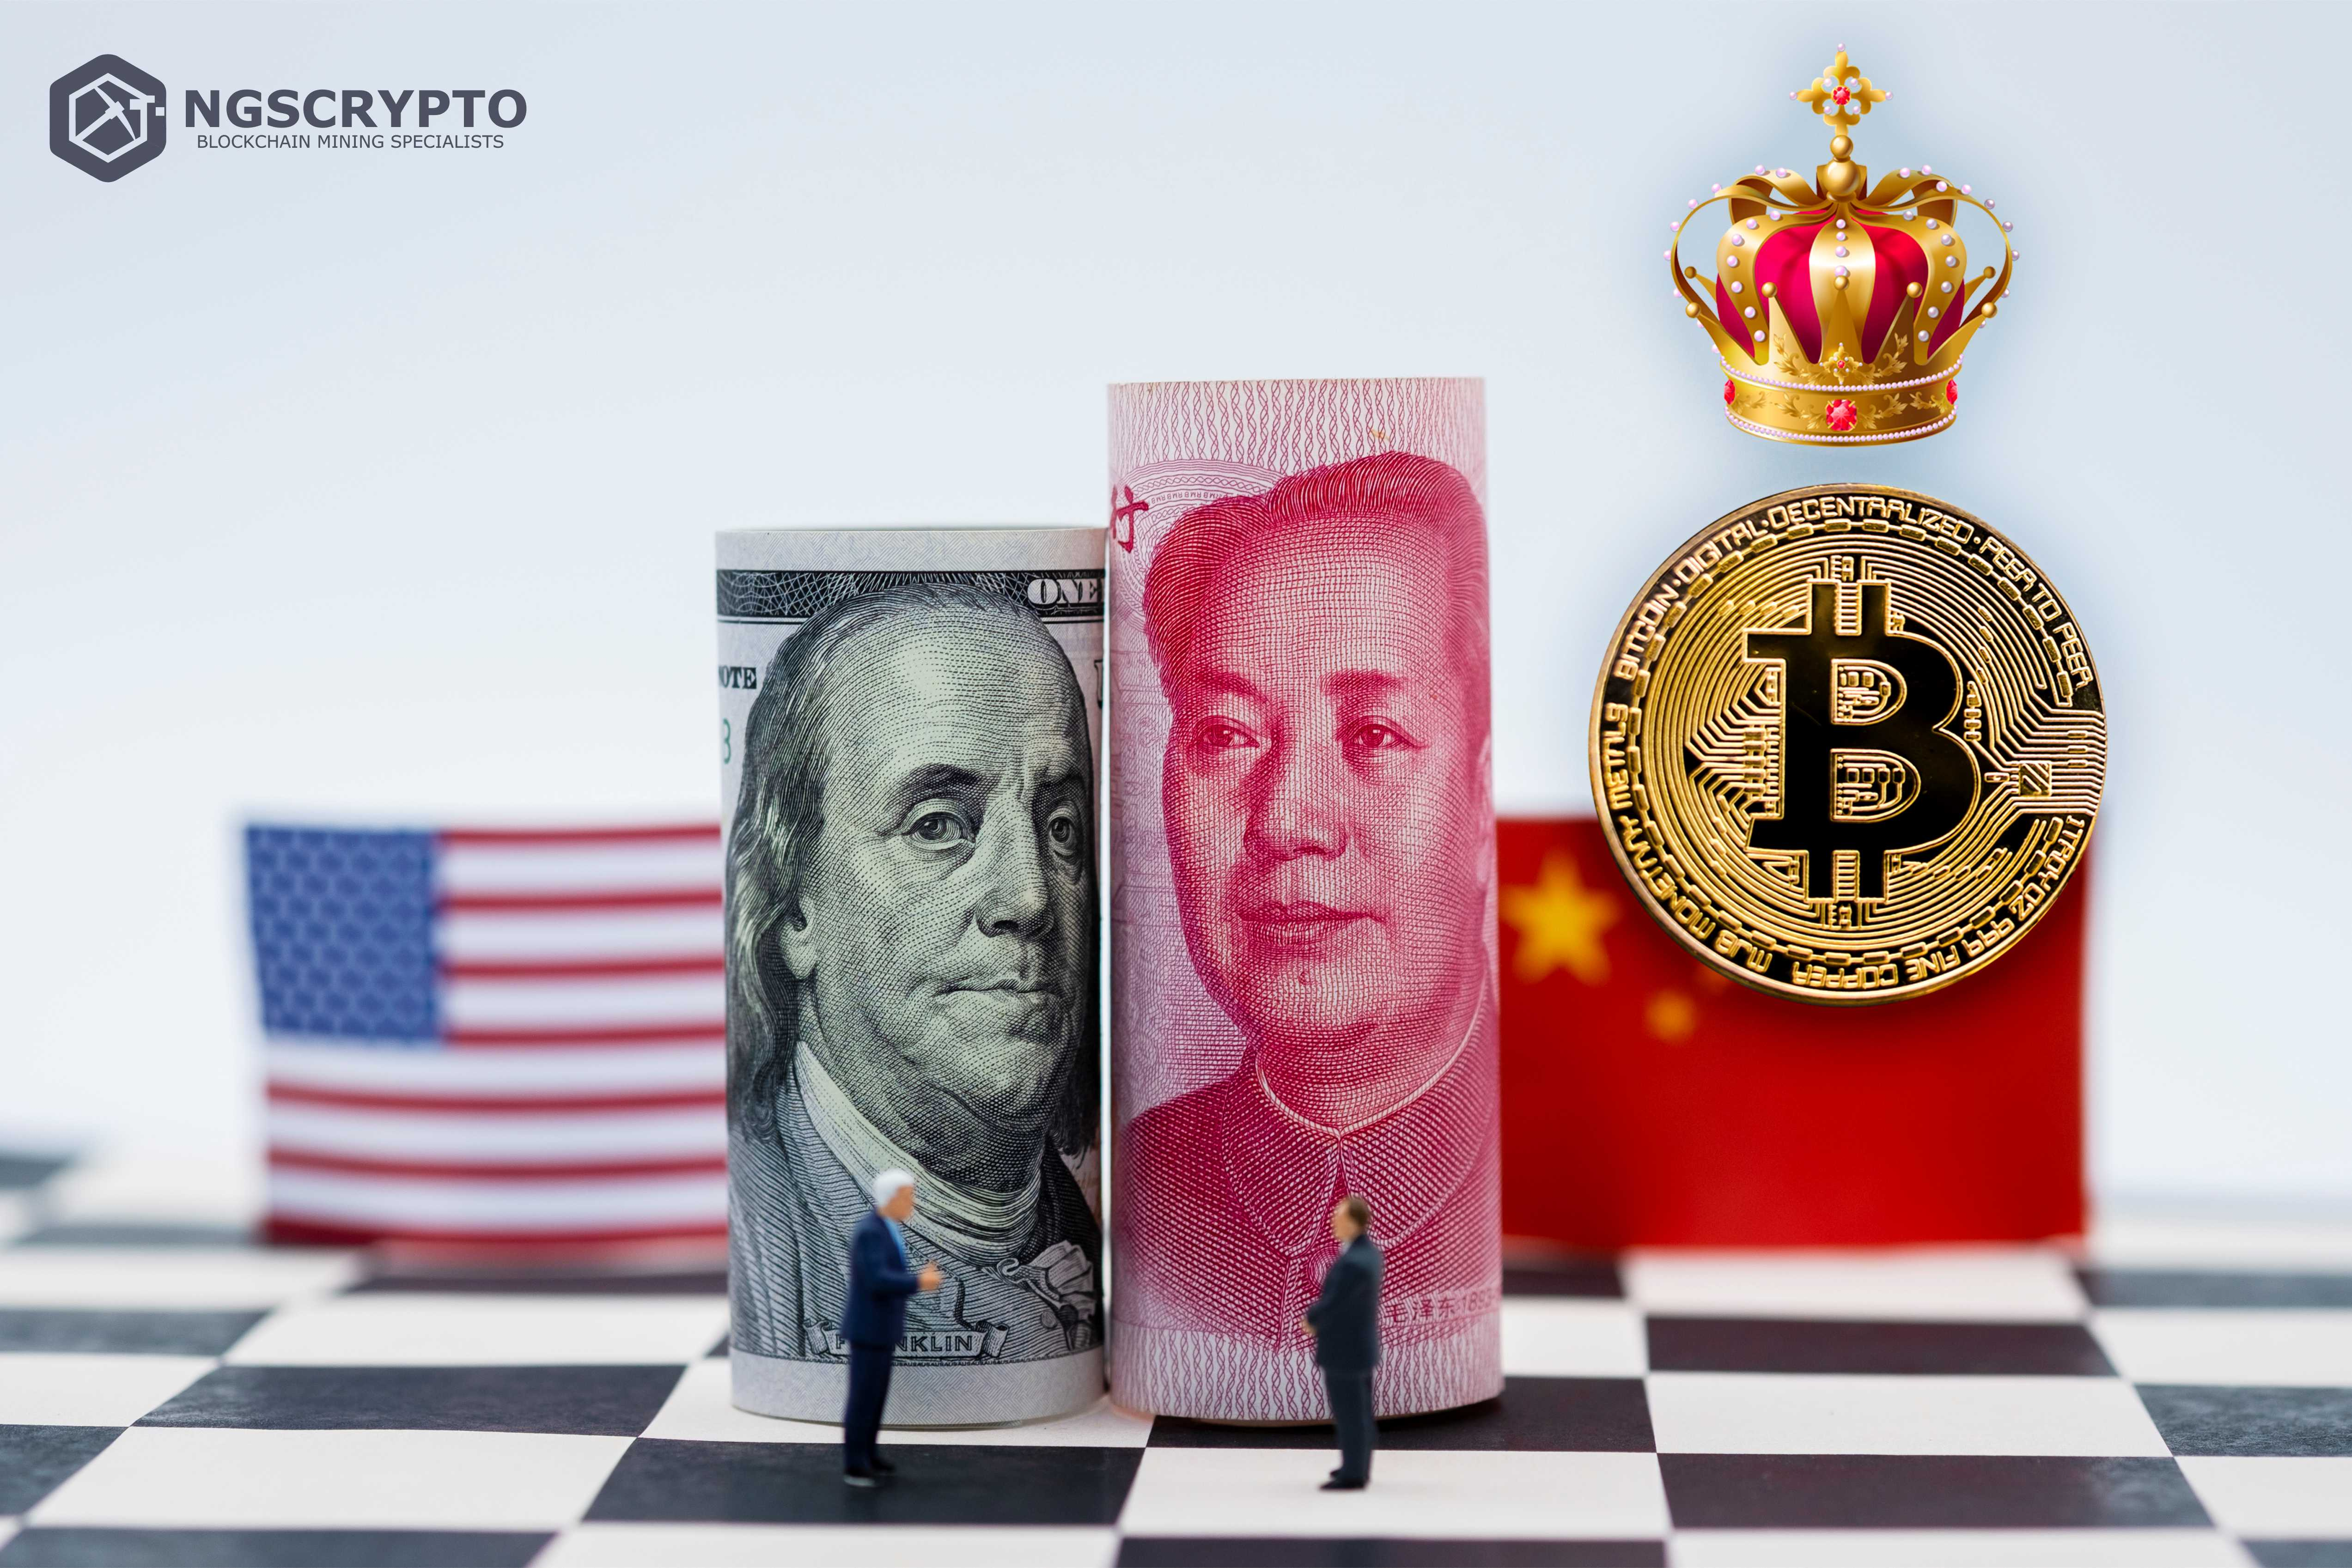 STOCKS DOWN YET BITCOIN SKYROCKETS AMIDST US-CHINA TRADE WAR